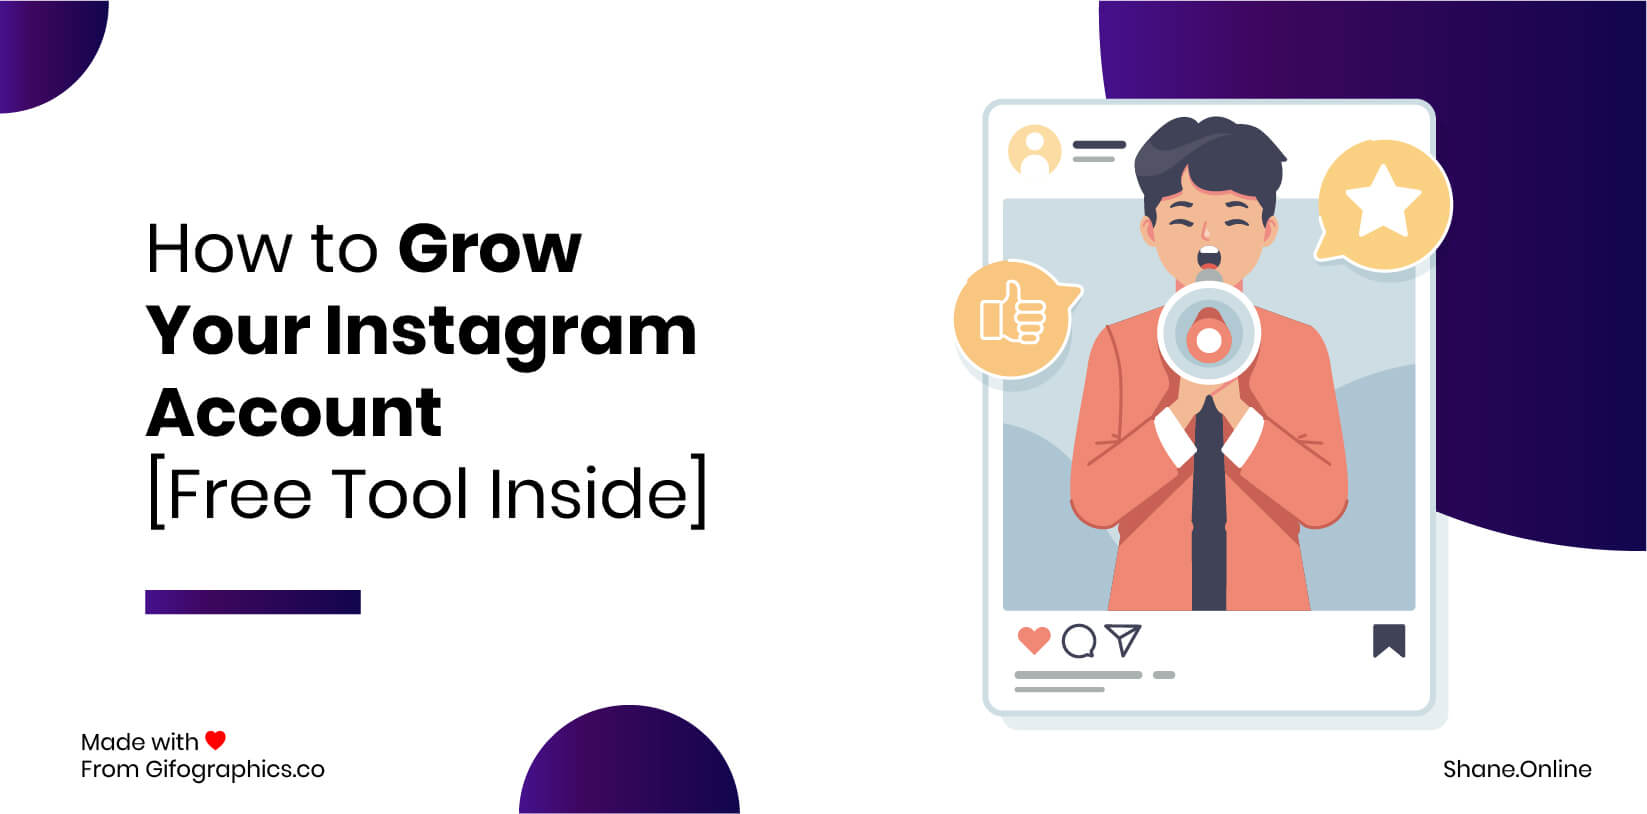 How To Grow Your Instagram Account Free Tool Inside